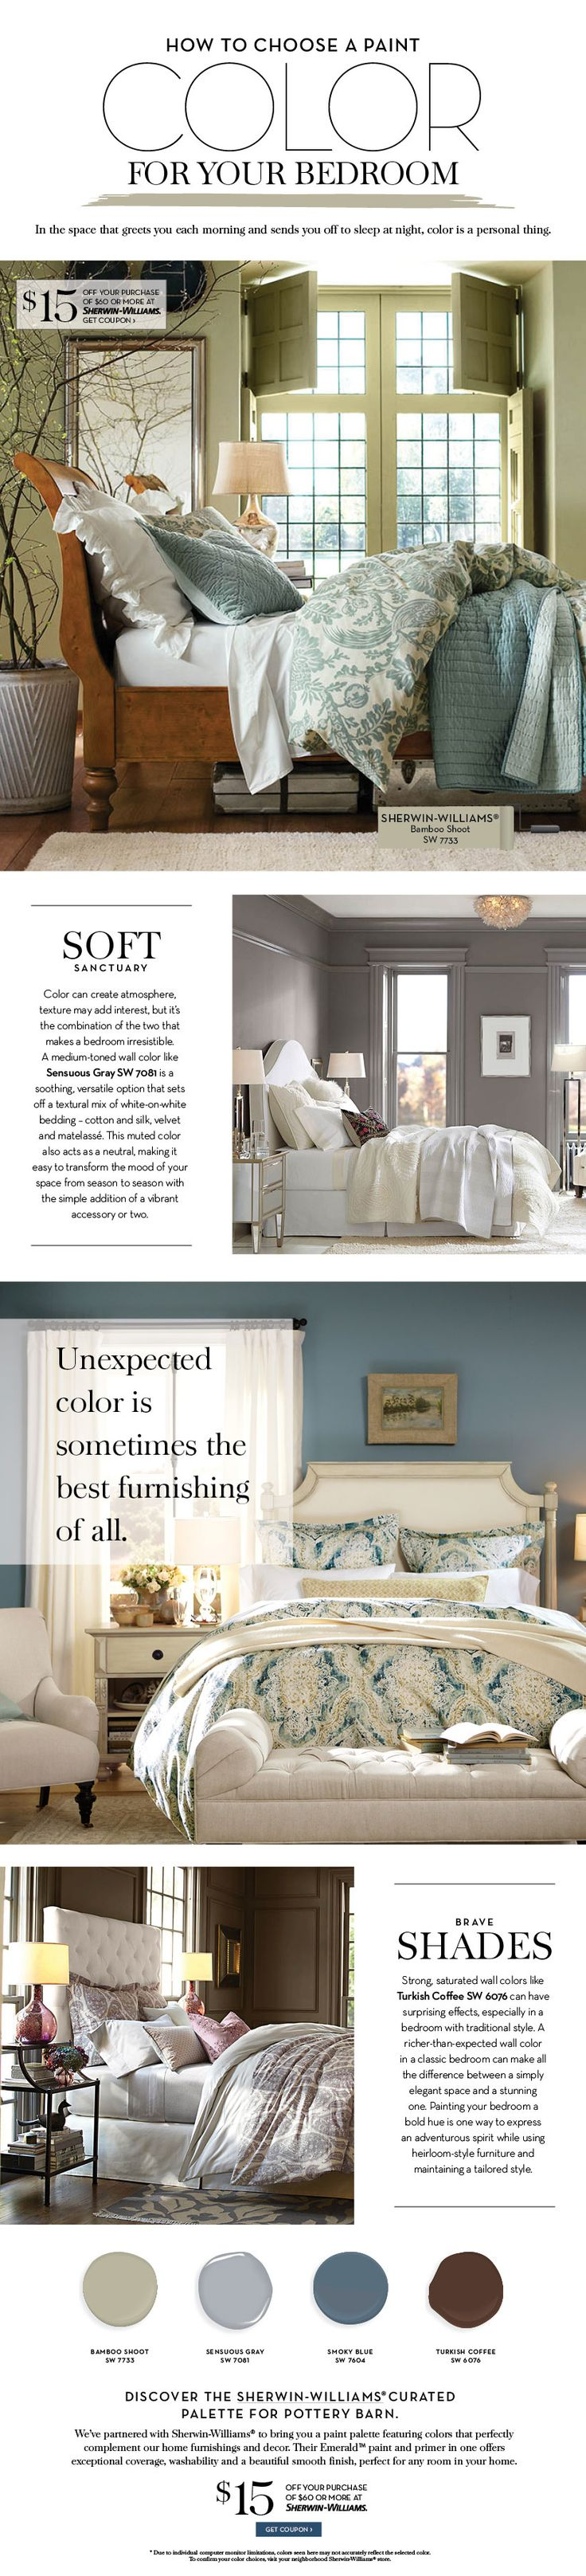 Choose a Paint Color For Your Bedroom   Pottery Barn. 17 Best images about Paint Colors   Pottery Barn on Pinterest